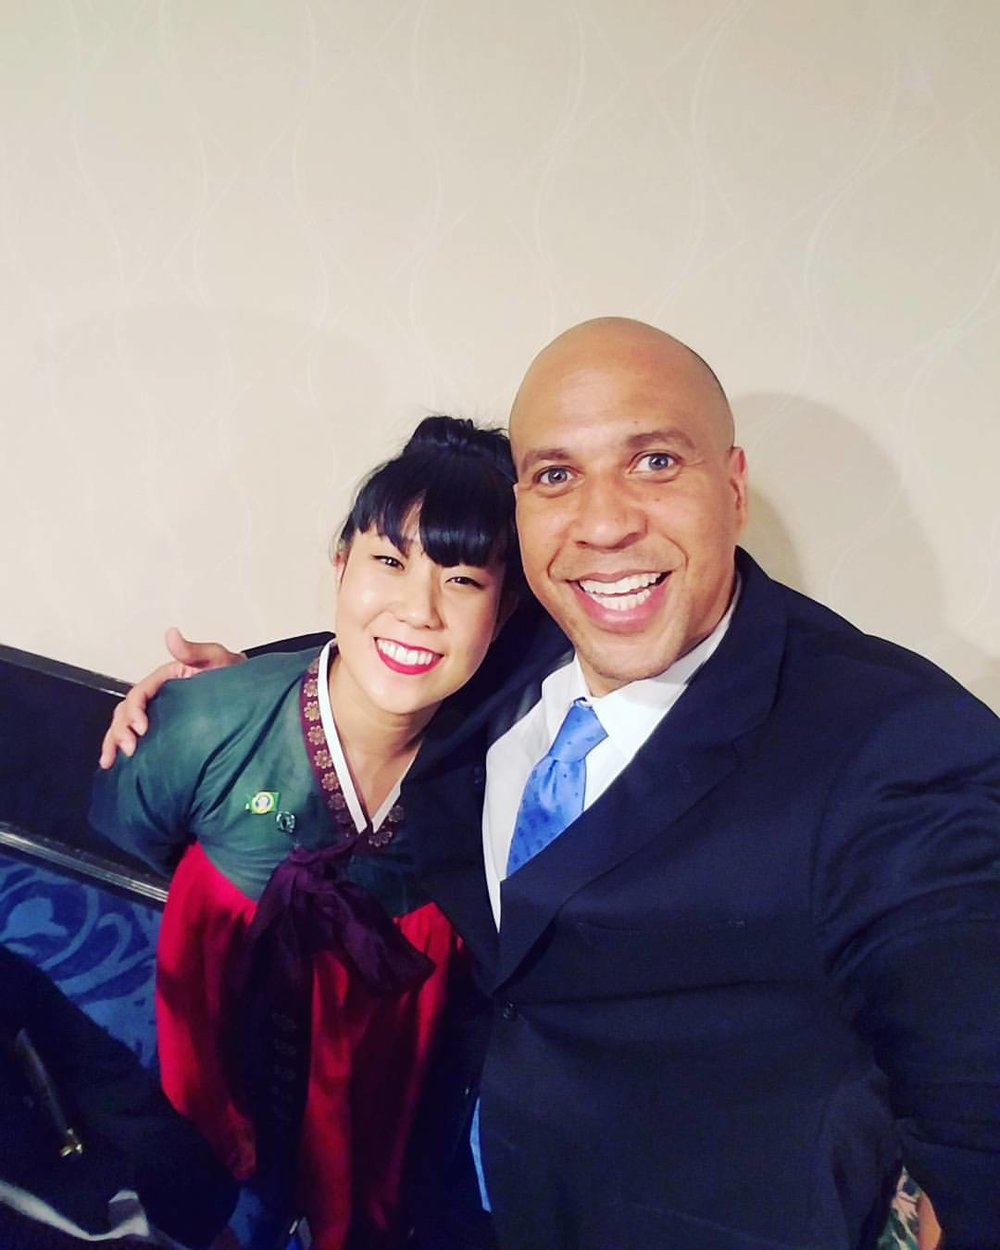 I was fortunate to hear Sen. Cory Booker (NJ) as the keynote speaker for the 2017 APAICS gala in Washington D.C. as a National Leadership Academy fellow representing Washington State.